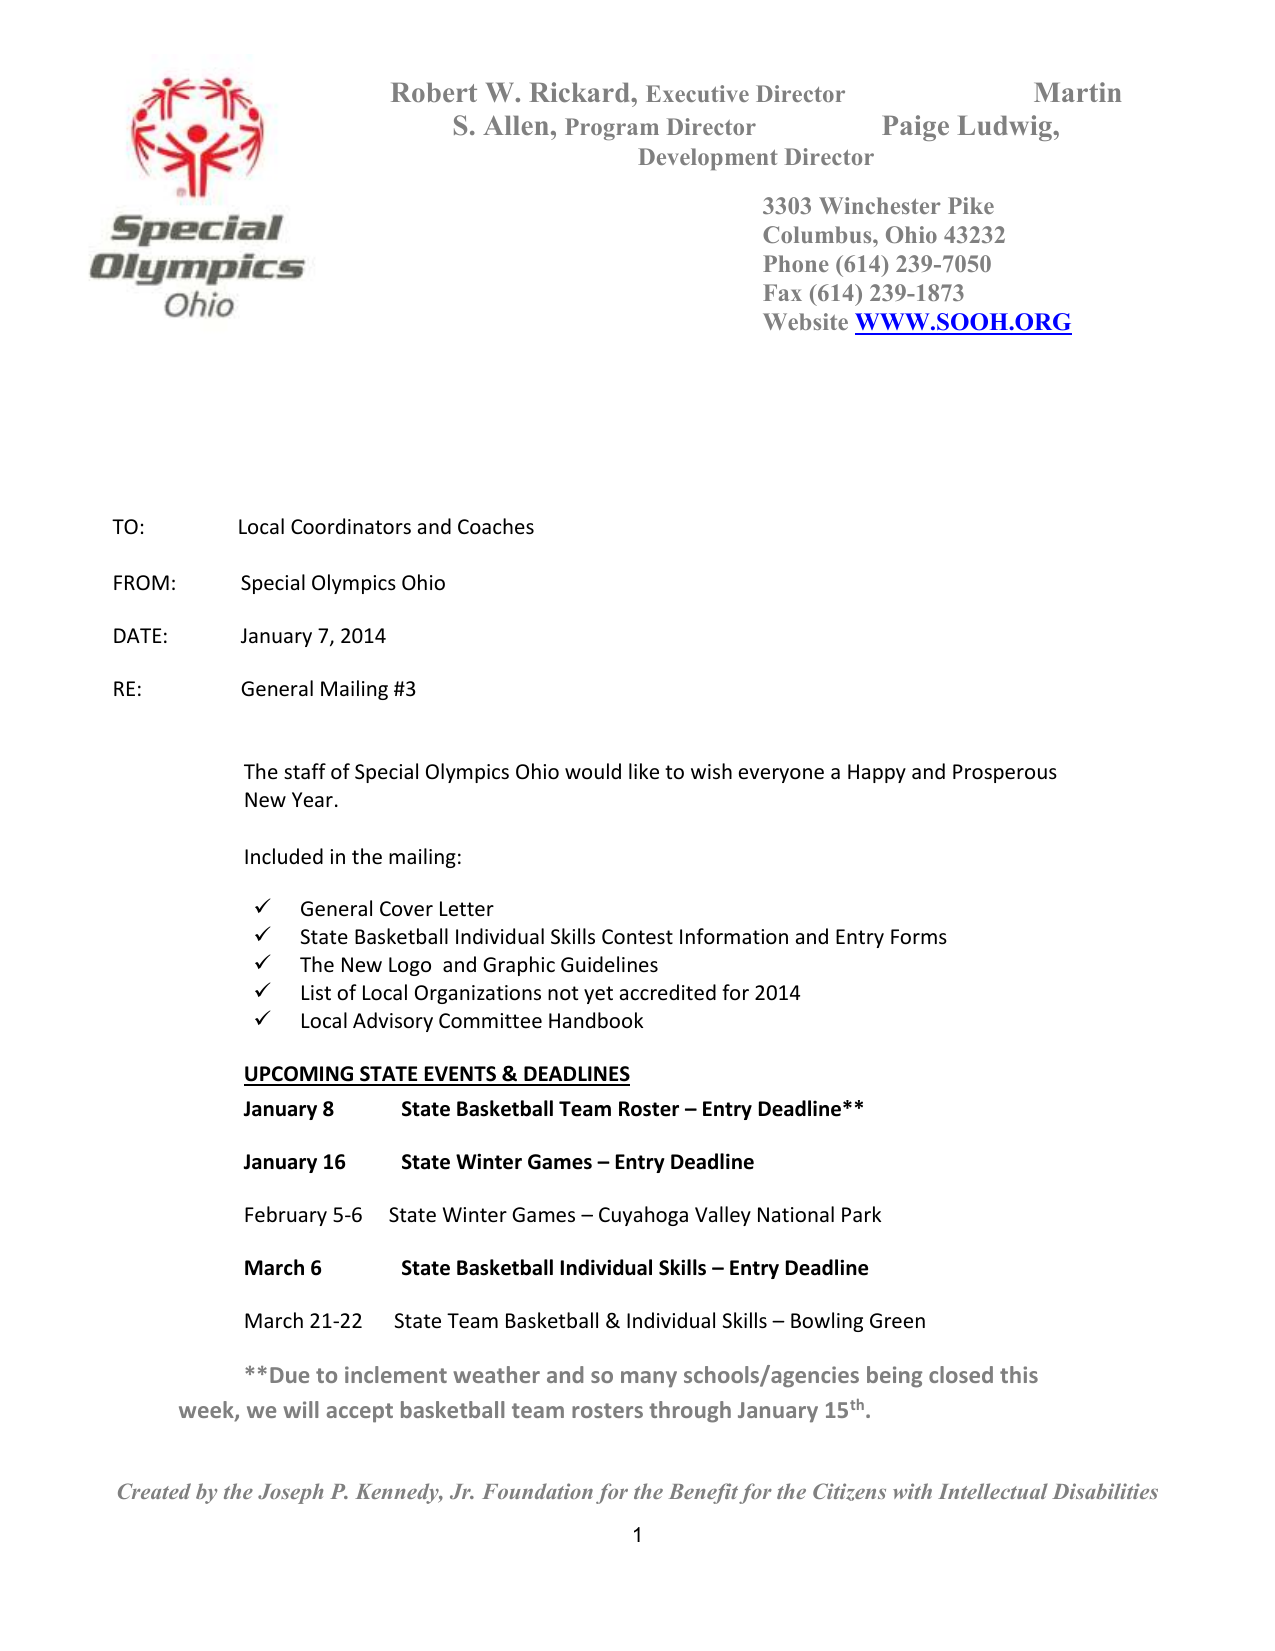 General Mailing Cover Letter